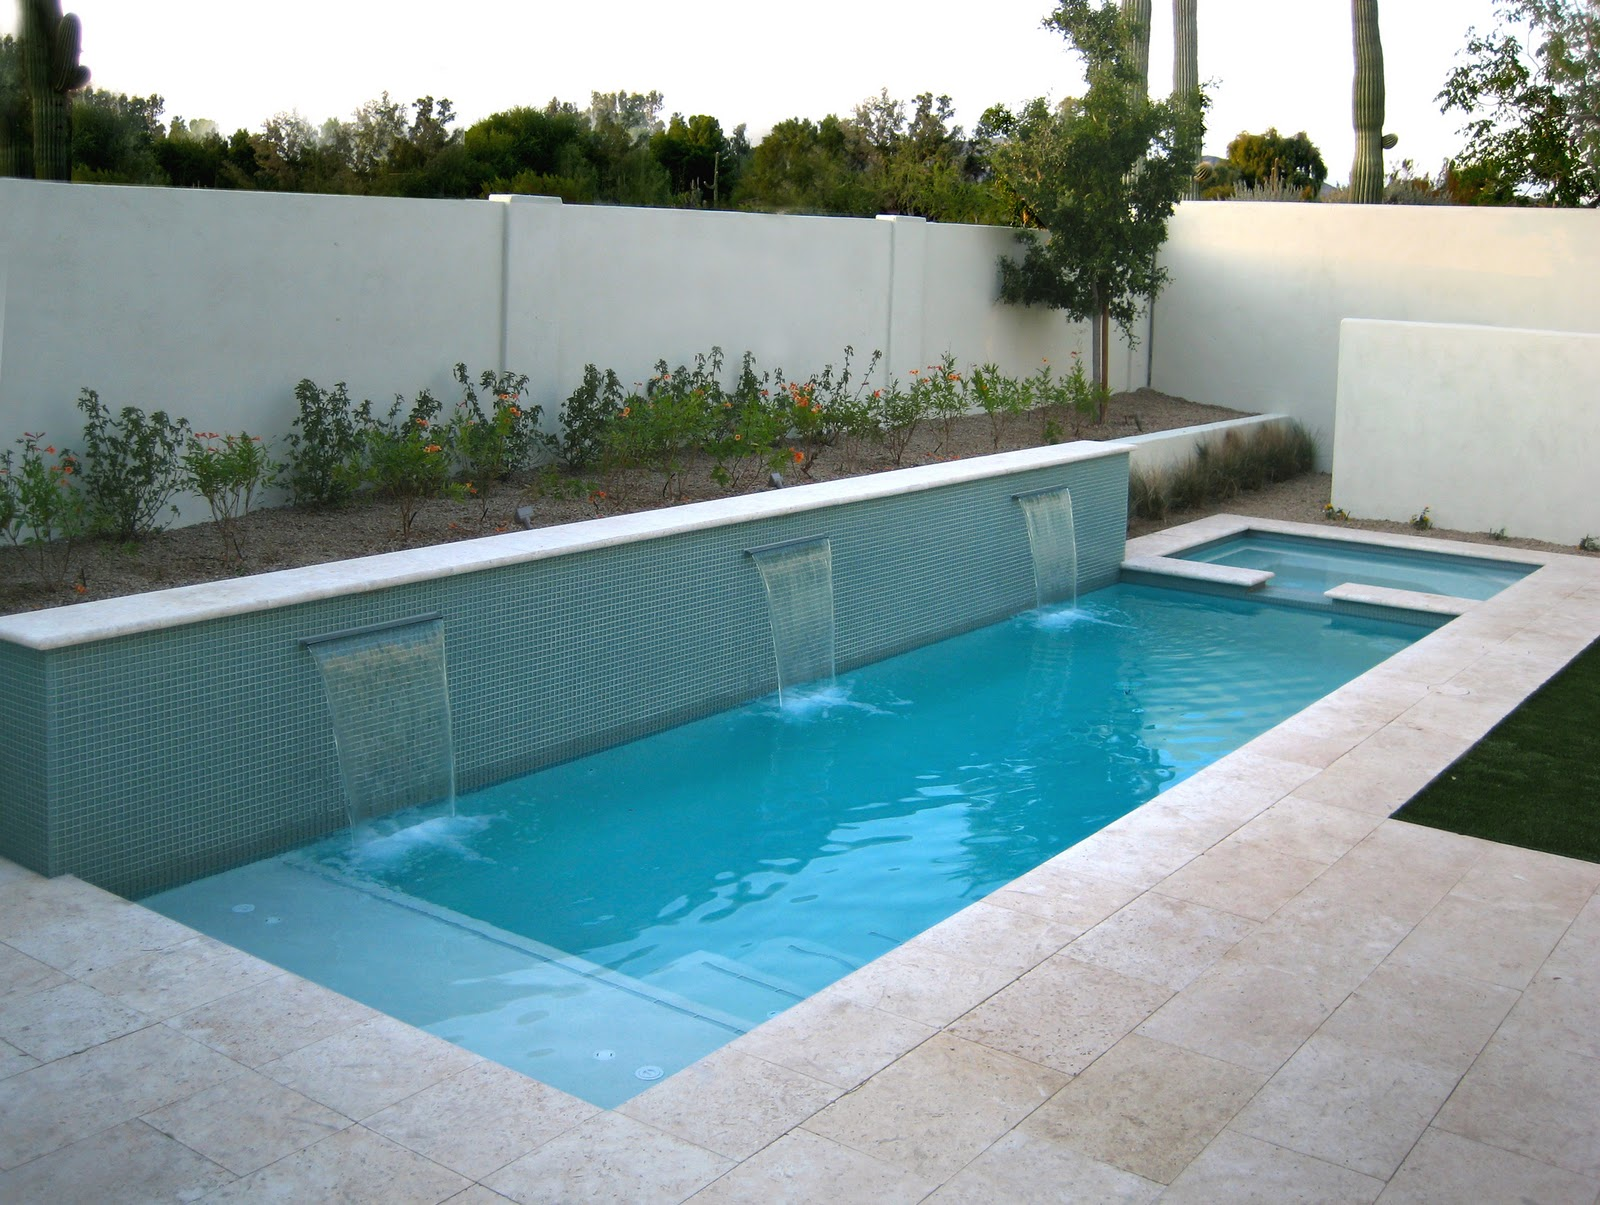 Swimming pools in small spaces alpentile glass tile pools and spas - Design of swimming pool ...